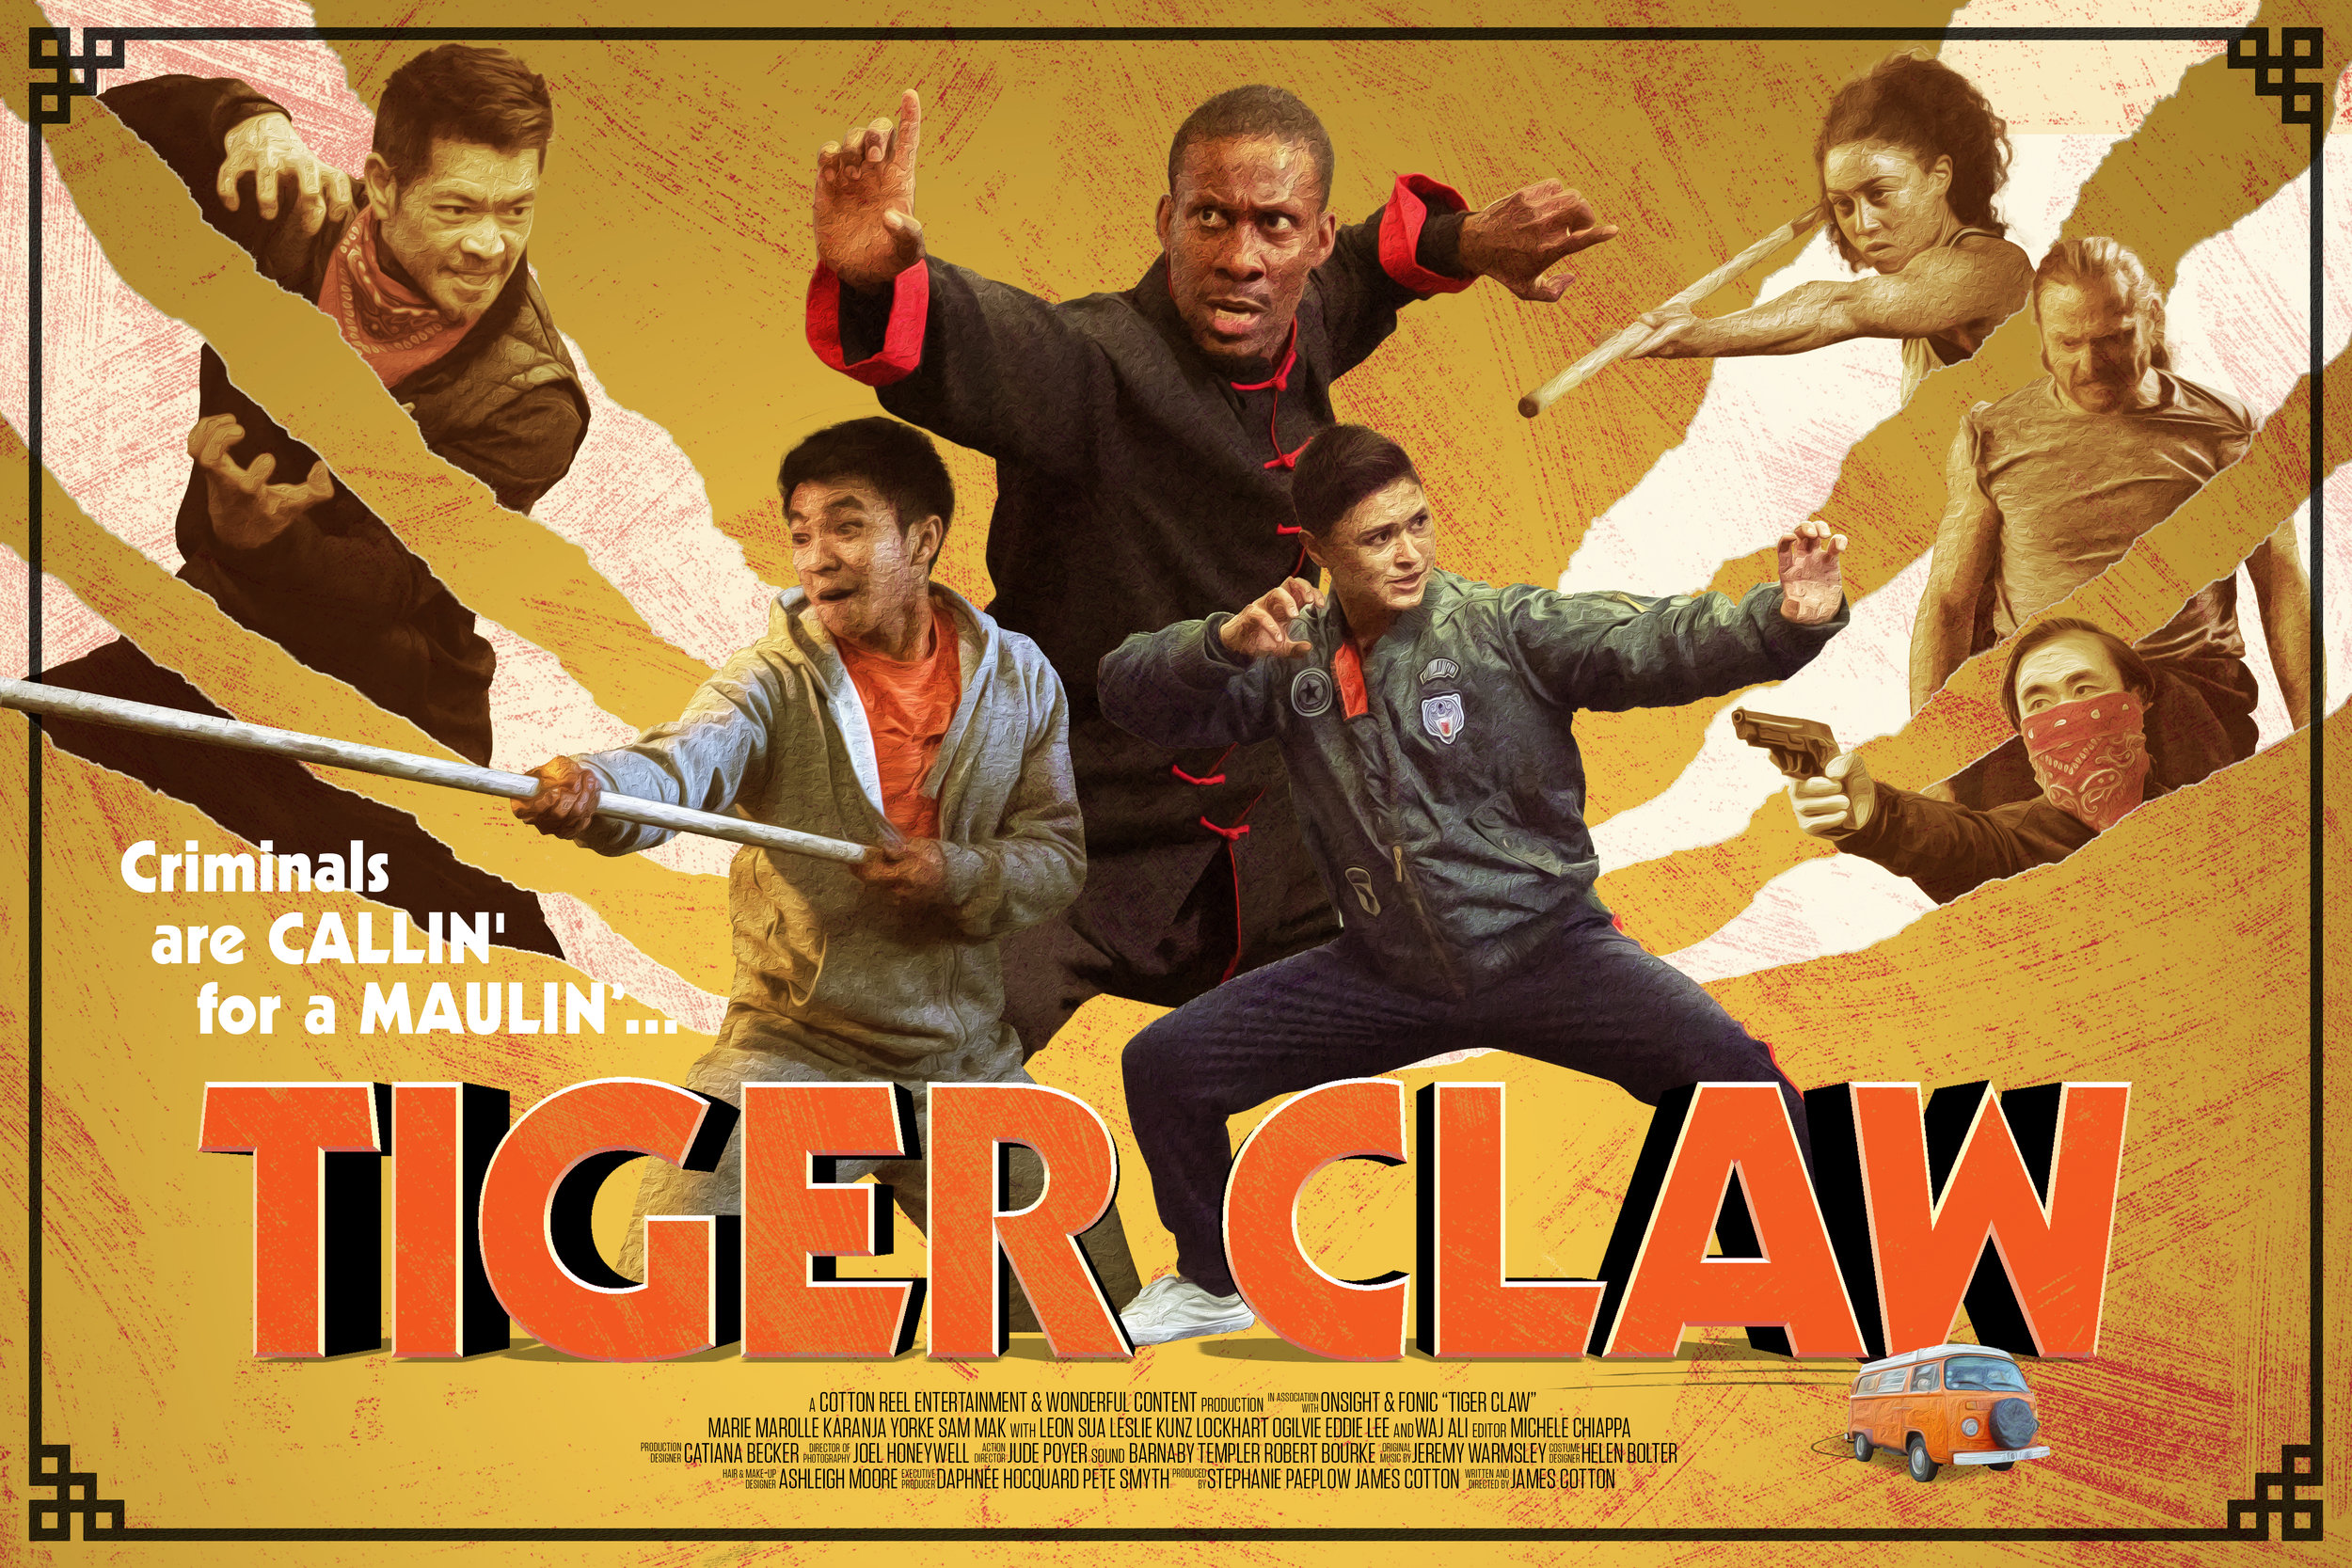 TIGER CLAW_FINAL_hor_2.jpg